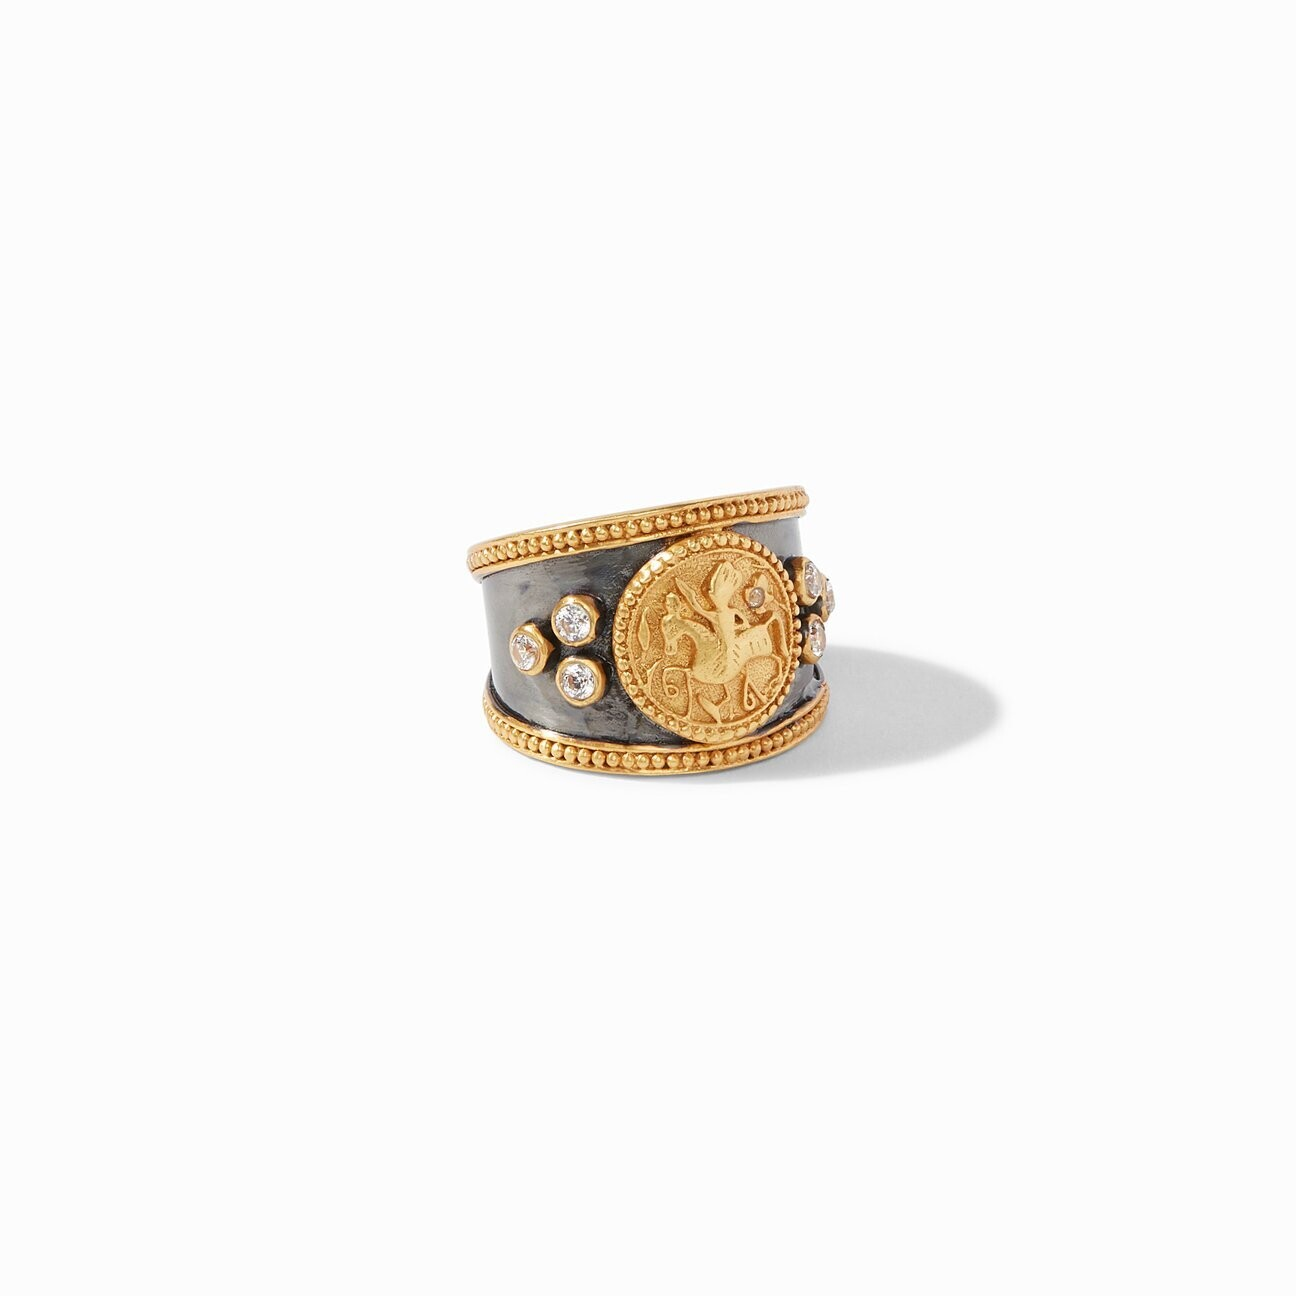 JULIE VOS Coin Crest Ring, Mixed Metal